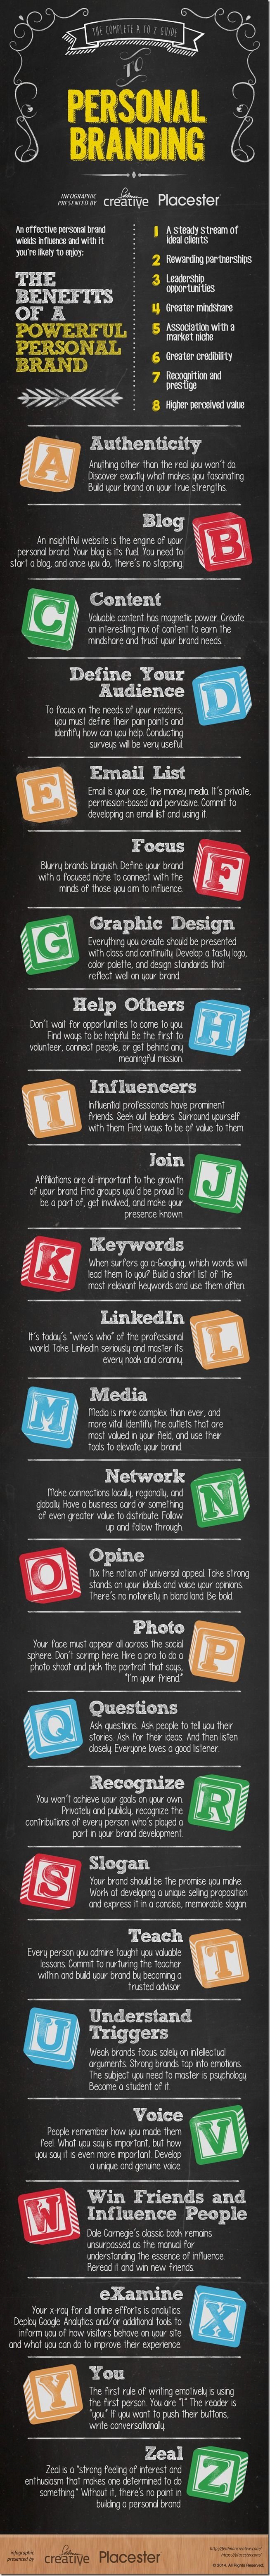 The A-Z of Personal Branding